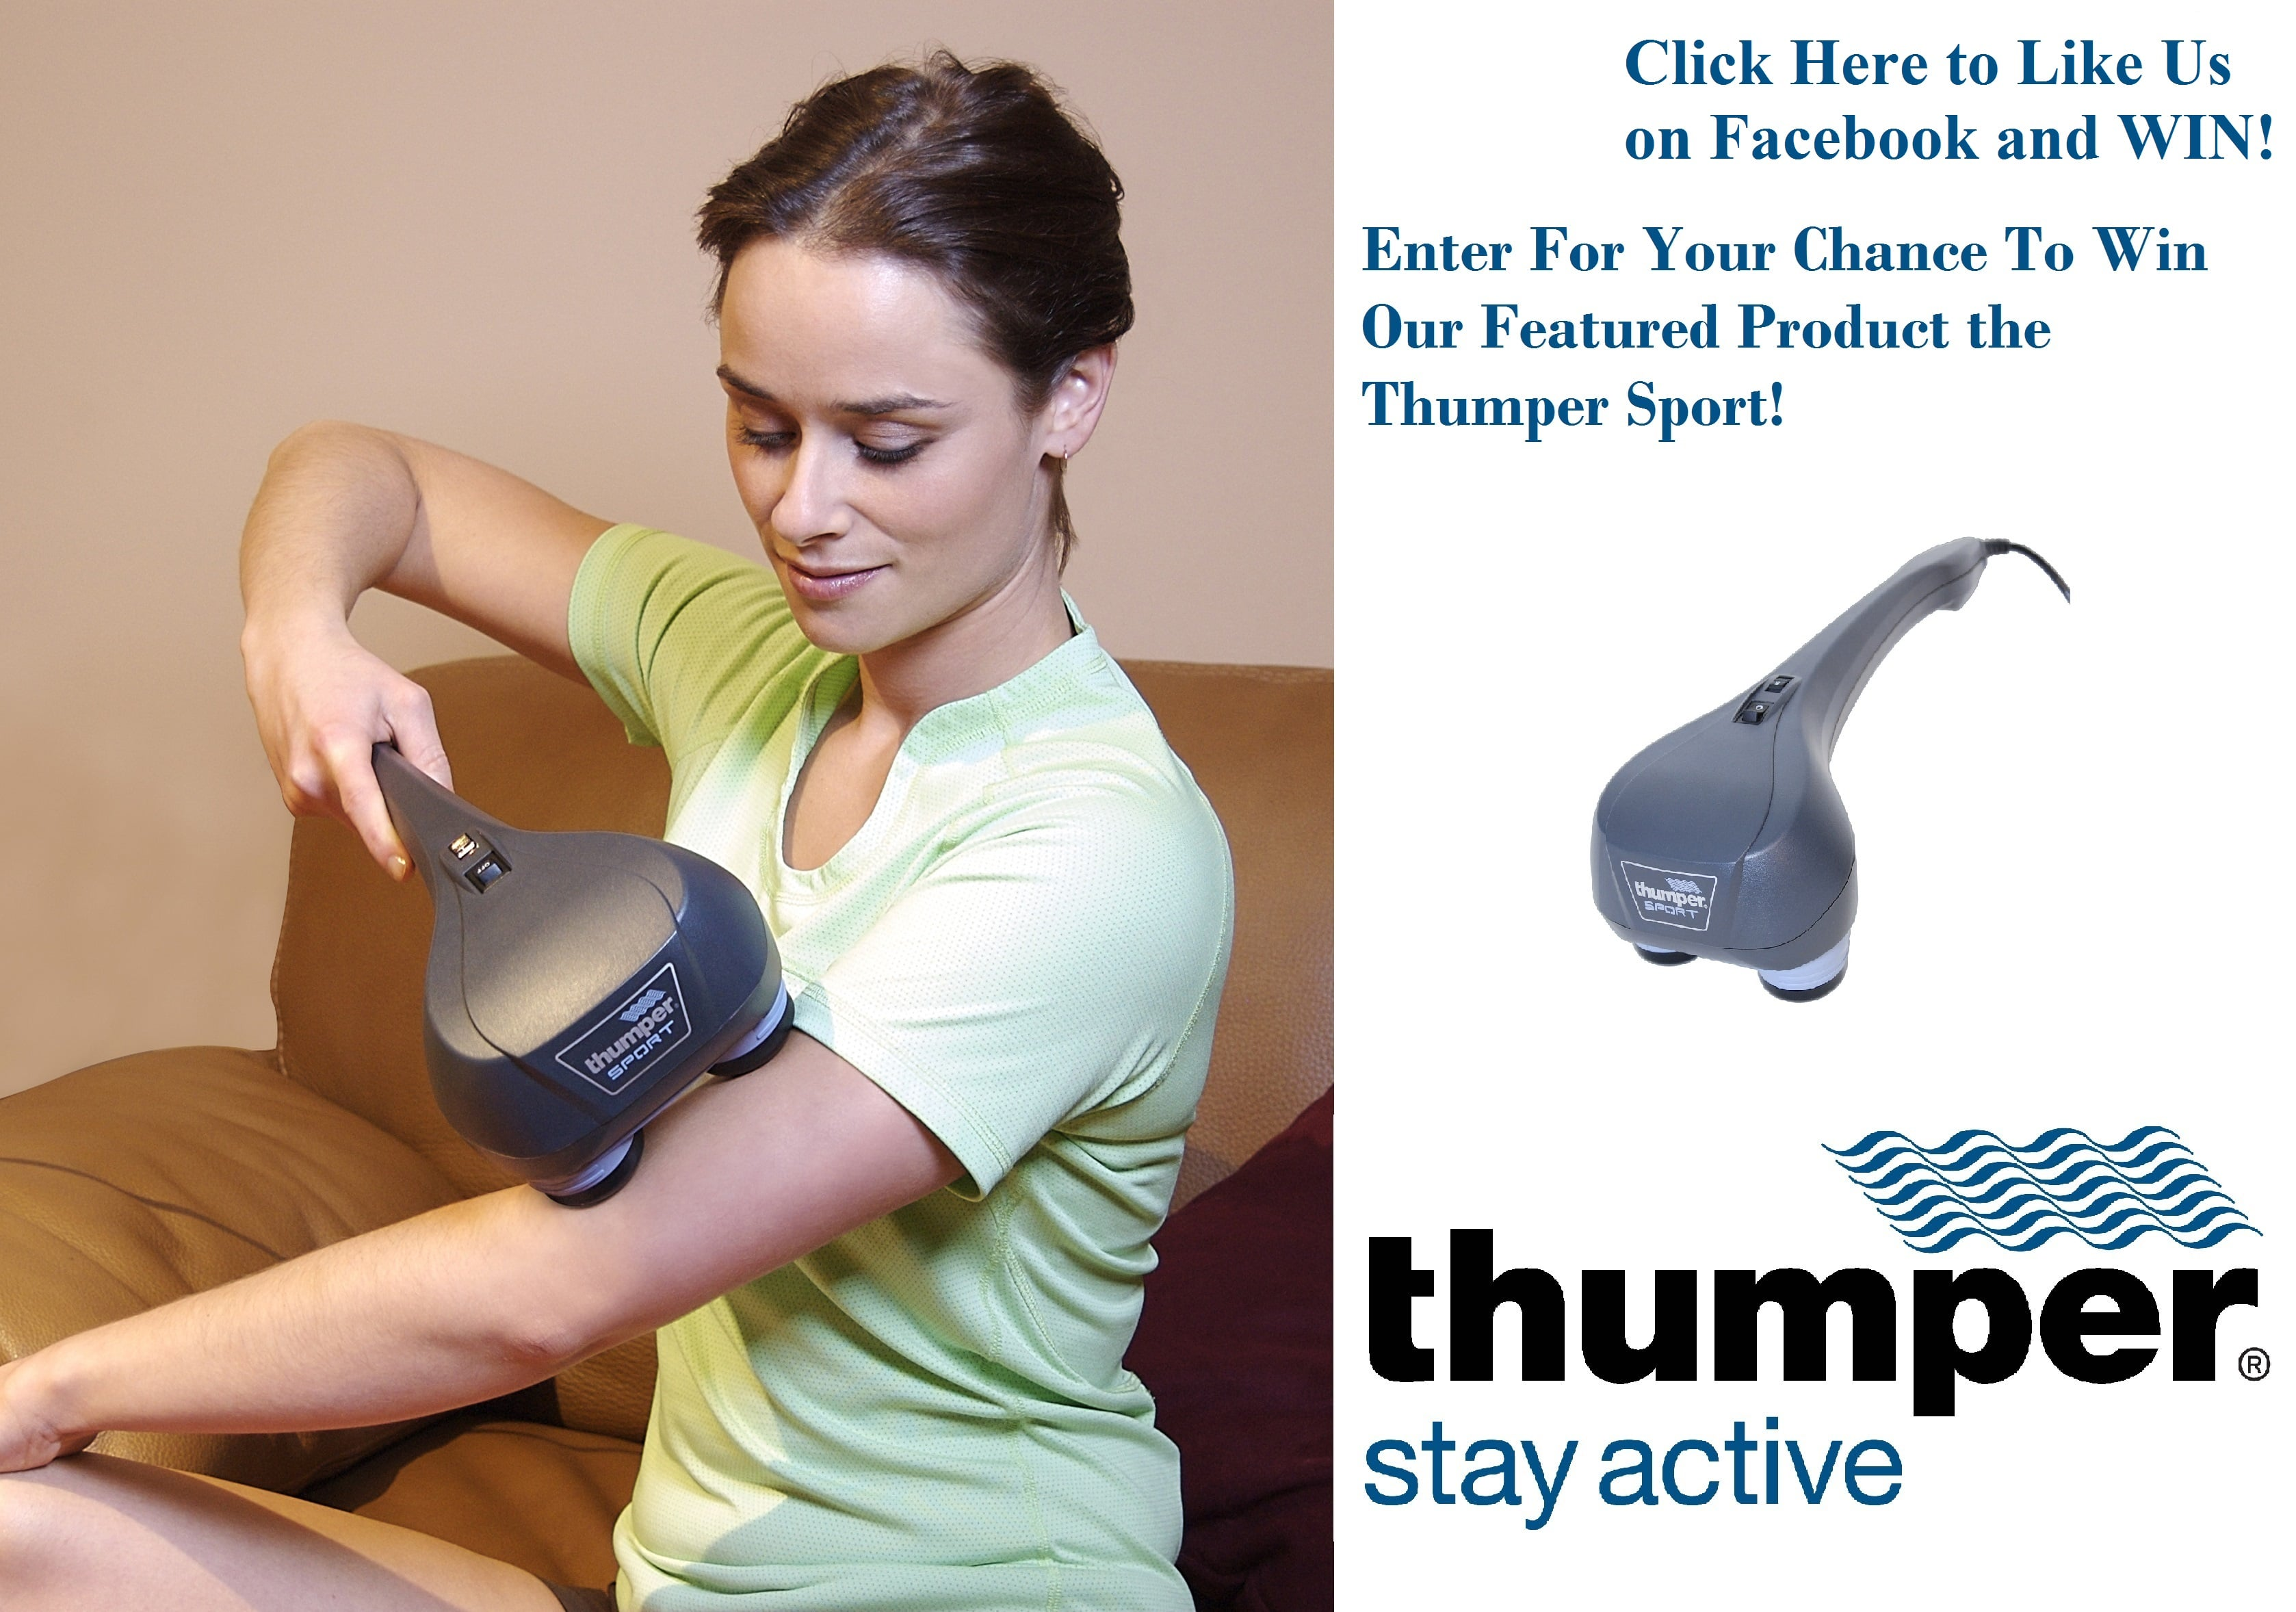 Thumper Sport Percussive Handheld Massager The Thumper Sport is the massager of choice for home users. If your shoulders are stiff after your initial round of golf at the beginning of the season, if your legs are burning from a bike ride with too much vertical climb, or if you simply spent too much time on your feet at the sales counter, the.